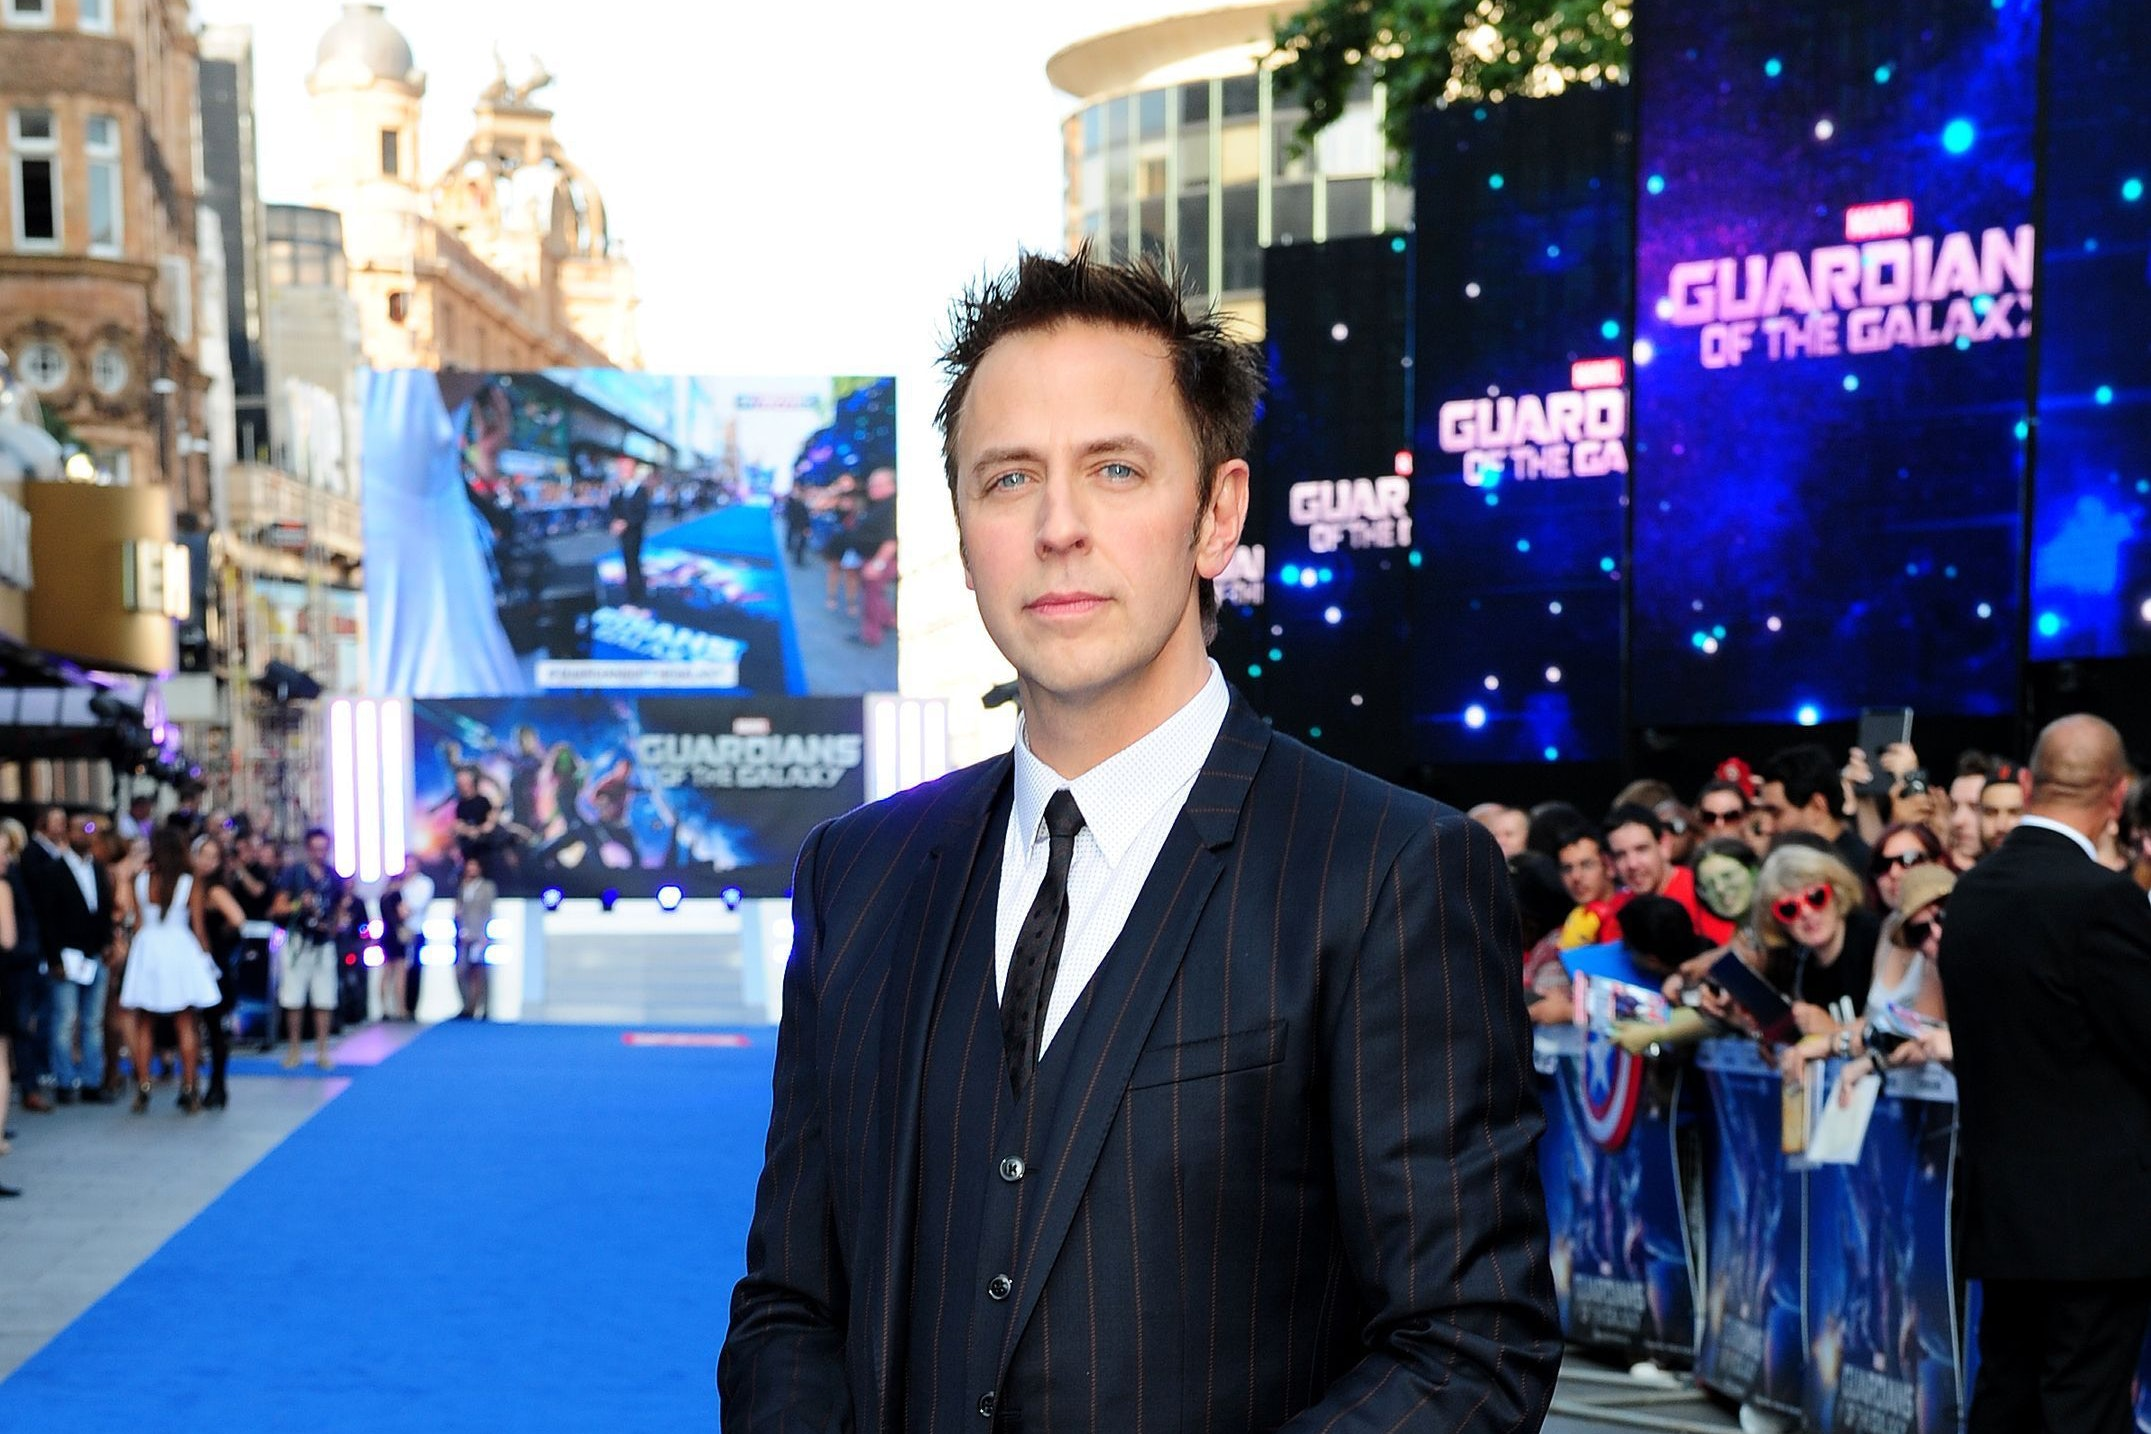 James Gunn at a premiere